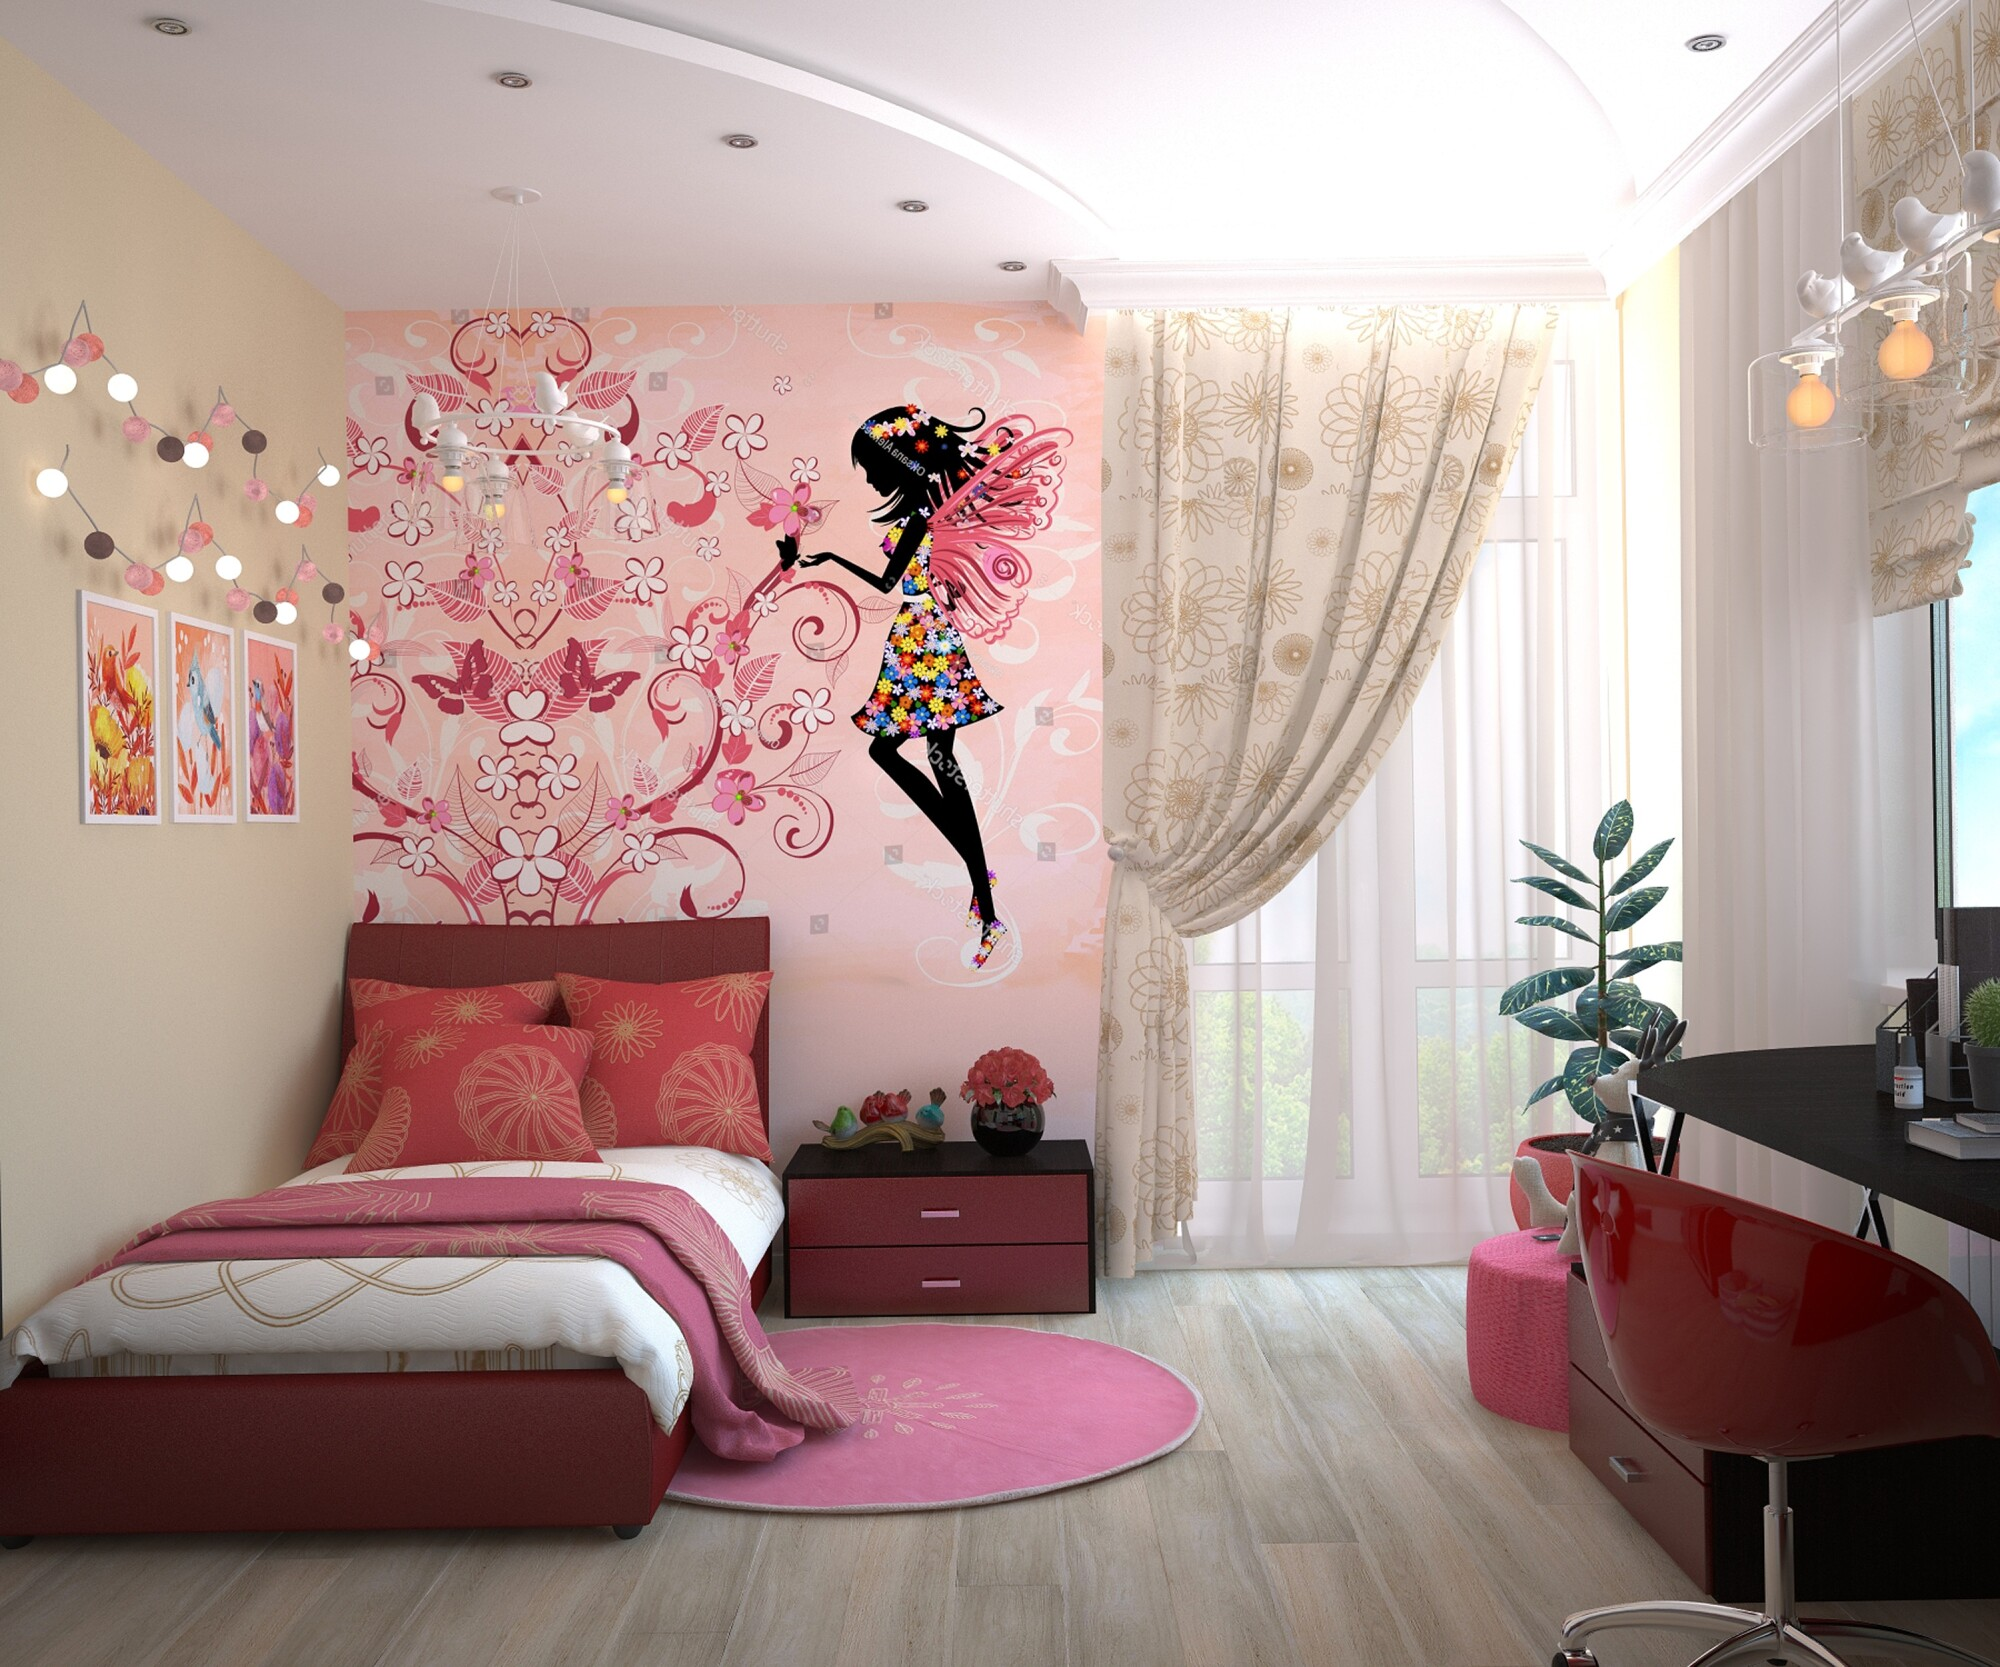 Cool Kids' Bedroom Ideas & Decorating Tips